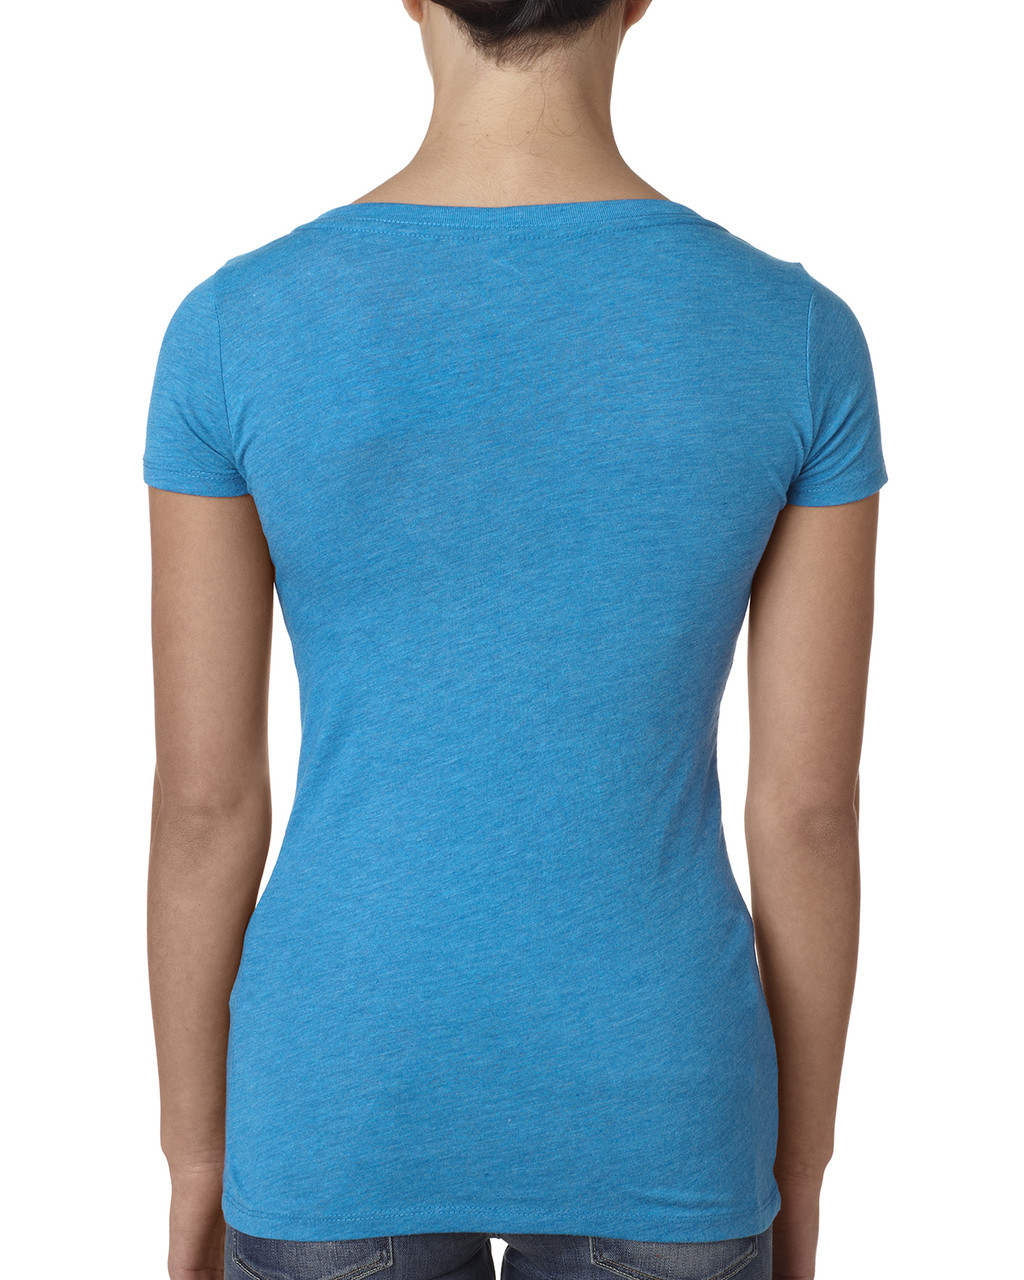 Vintage Turq - back 6730 Next Level Ladies' Tri-Blend Scoop Tee | Blankclothing.ca